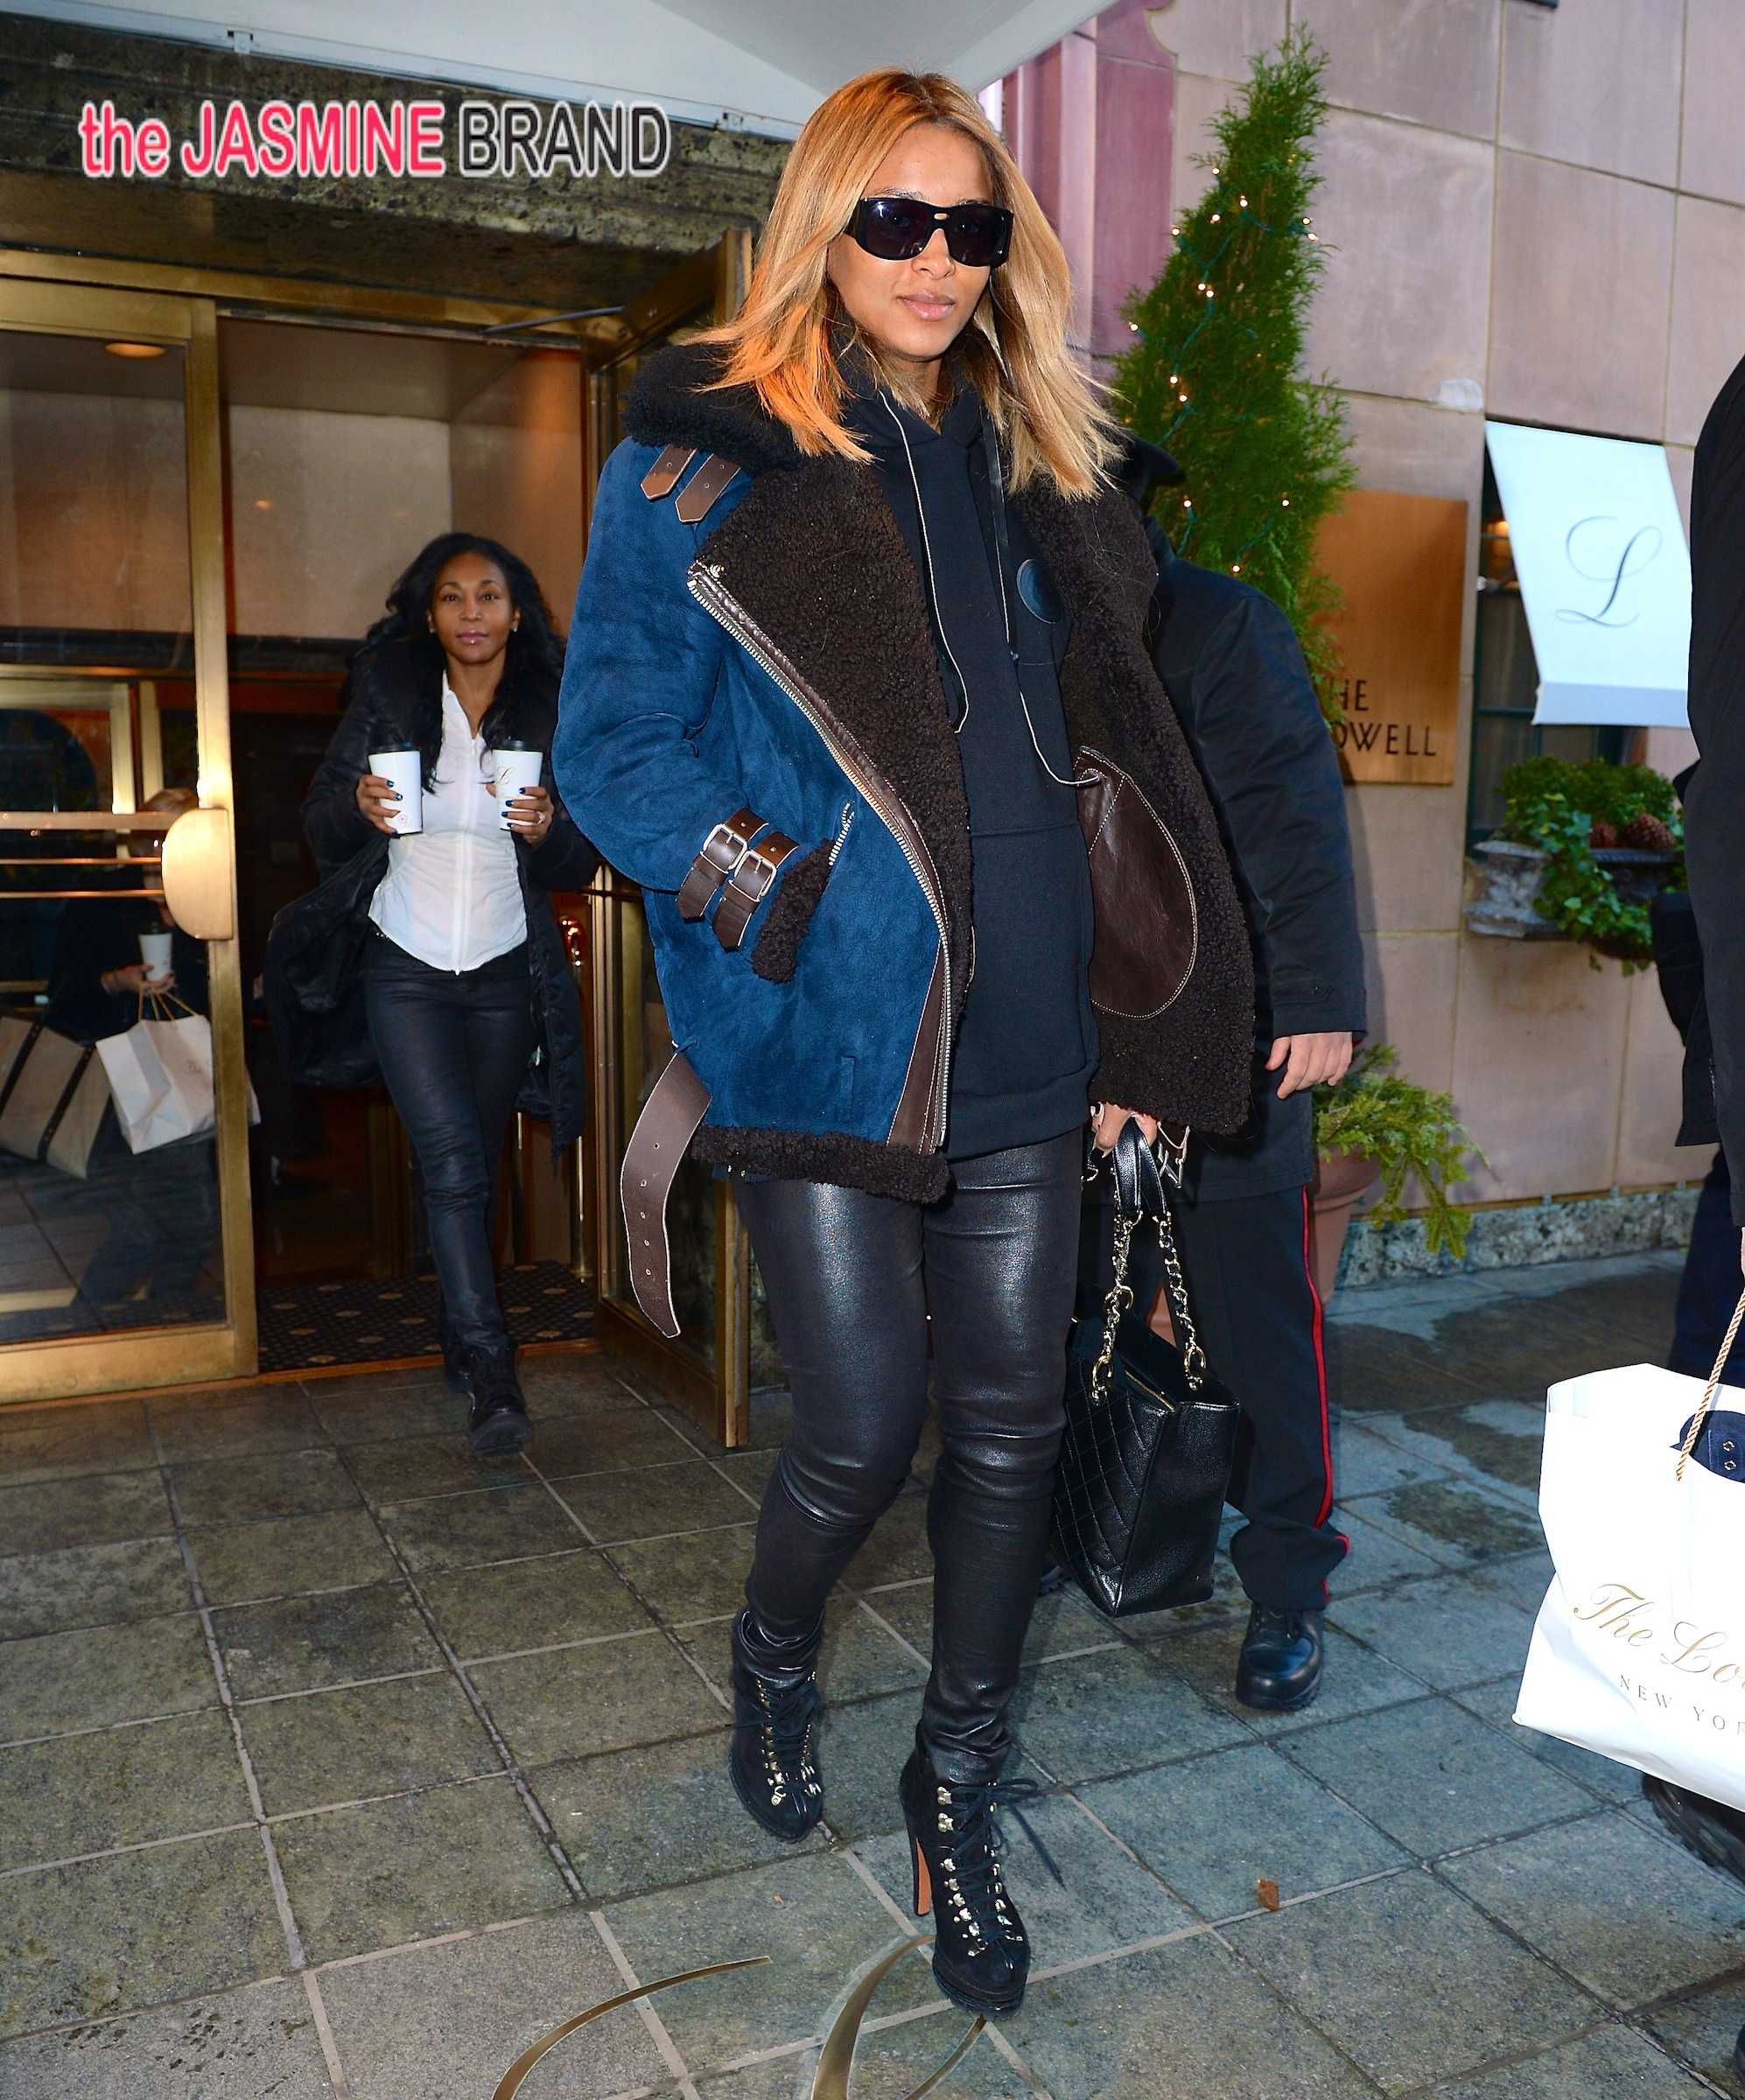 Ciara steps out with a pregnant glow and stiletto boots in NYC